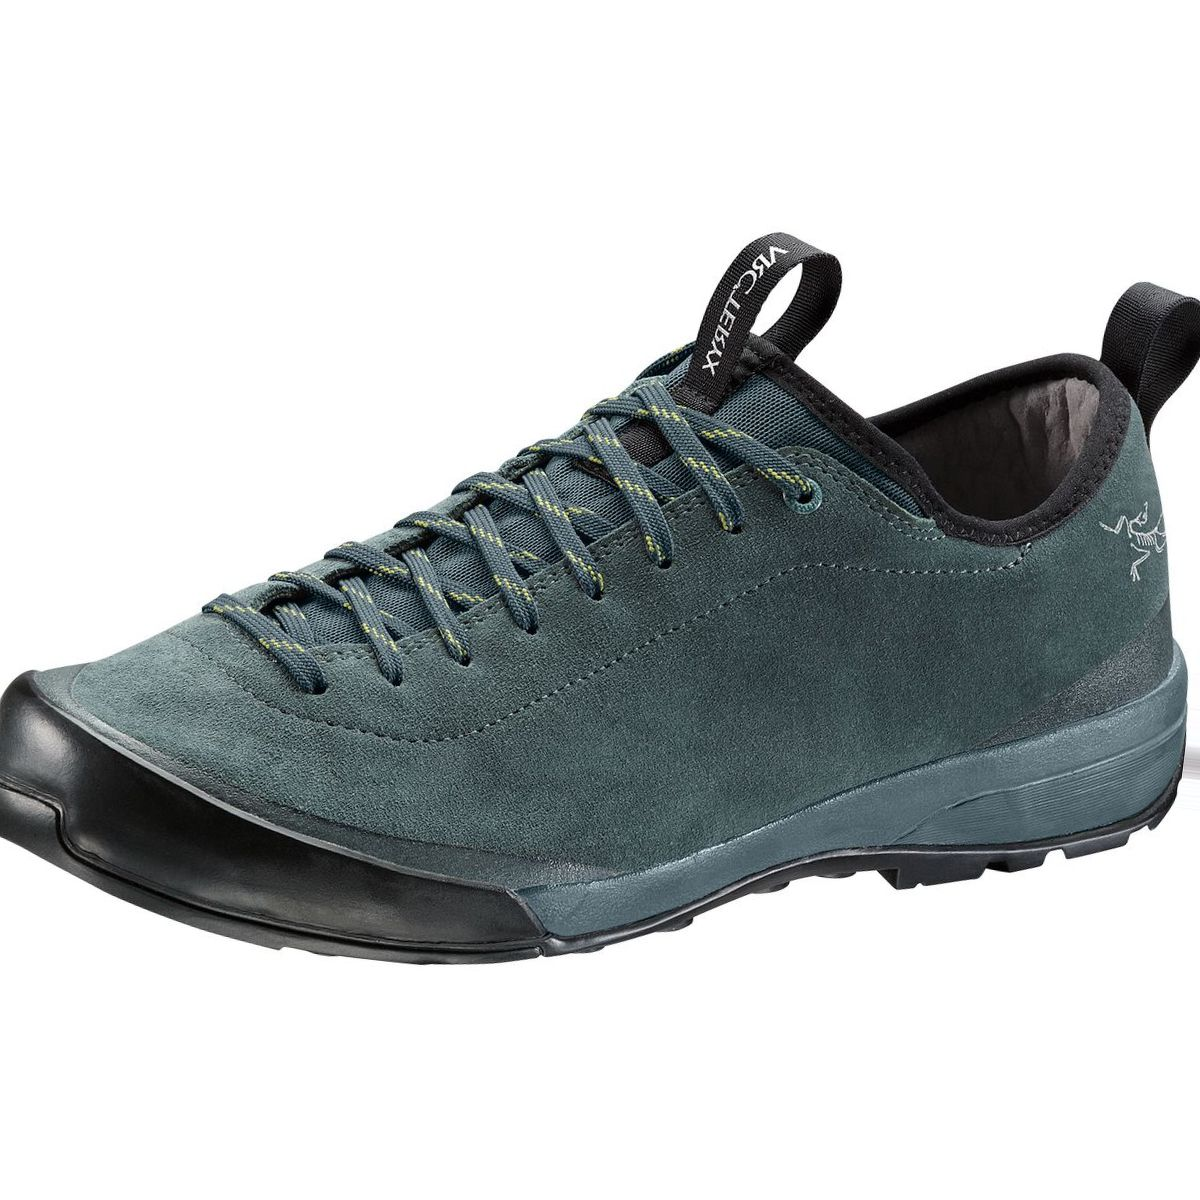 Arc'teryx Acrux SL Leather Approach Shoe - Men's